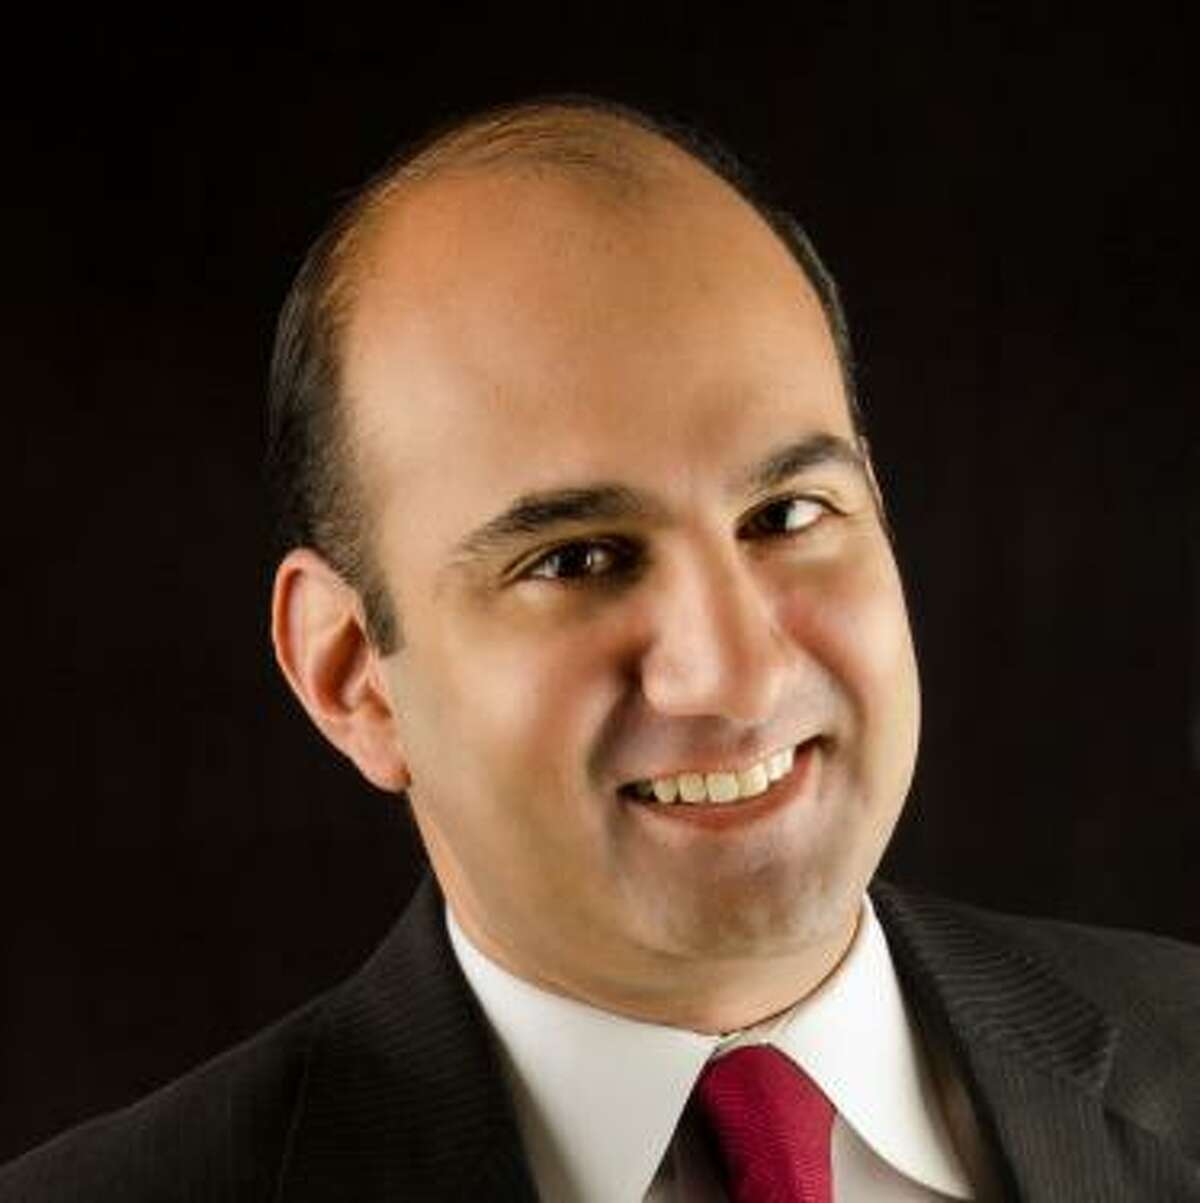 Rehan Alimohammad will be the moderator of the 2021 Stafford Candidates Forum for Stafford Municipal School District and Stafford City Council.